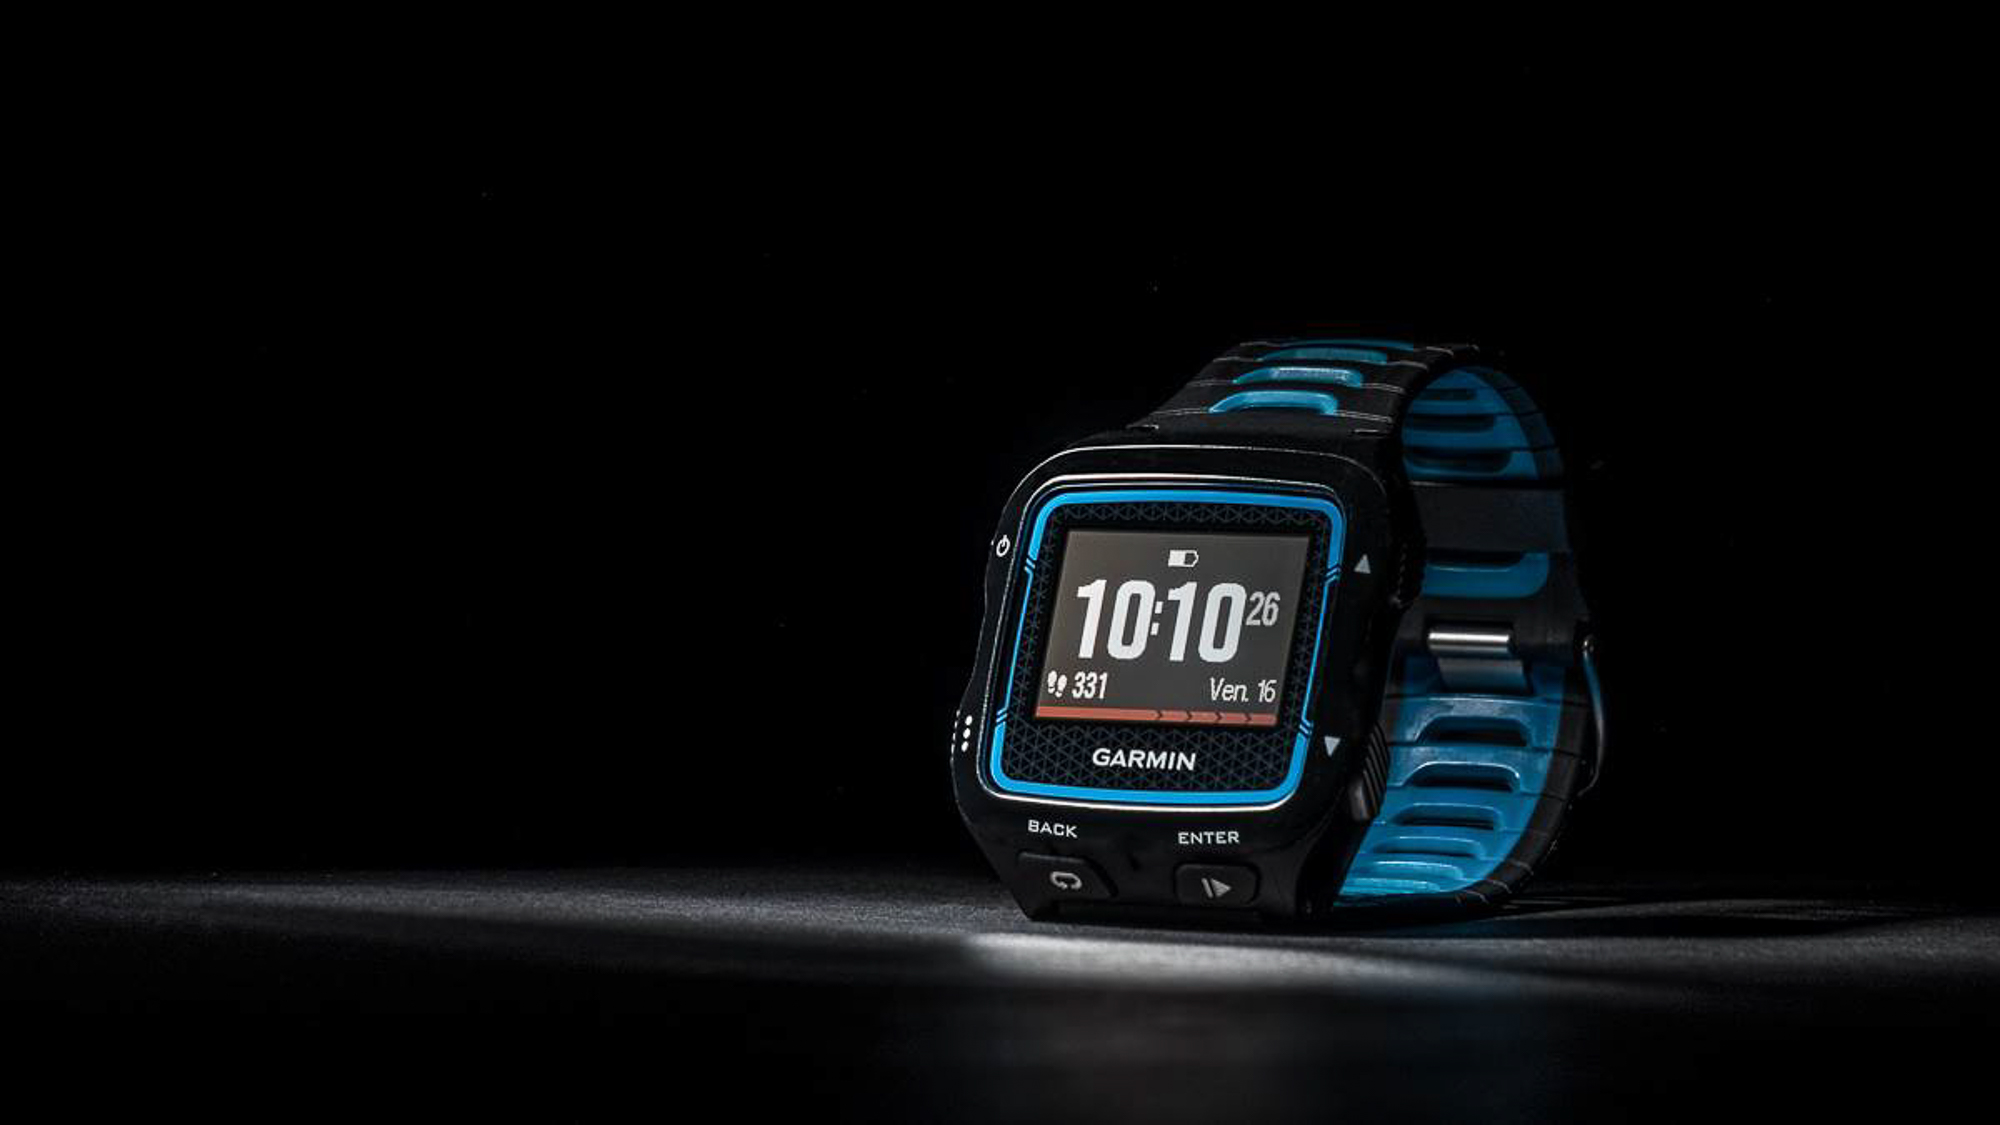 Product photography services studio photographer Singapore e-commerce shoot Garmin triathlon watch